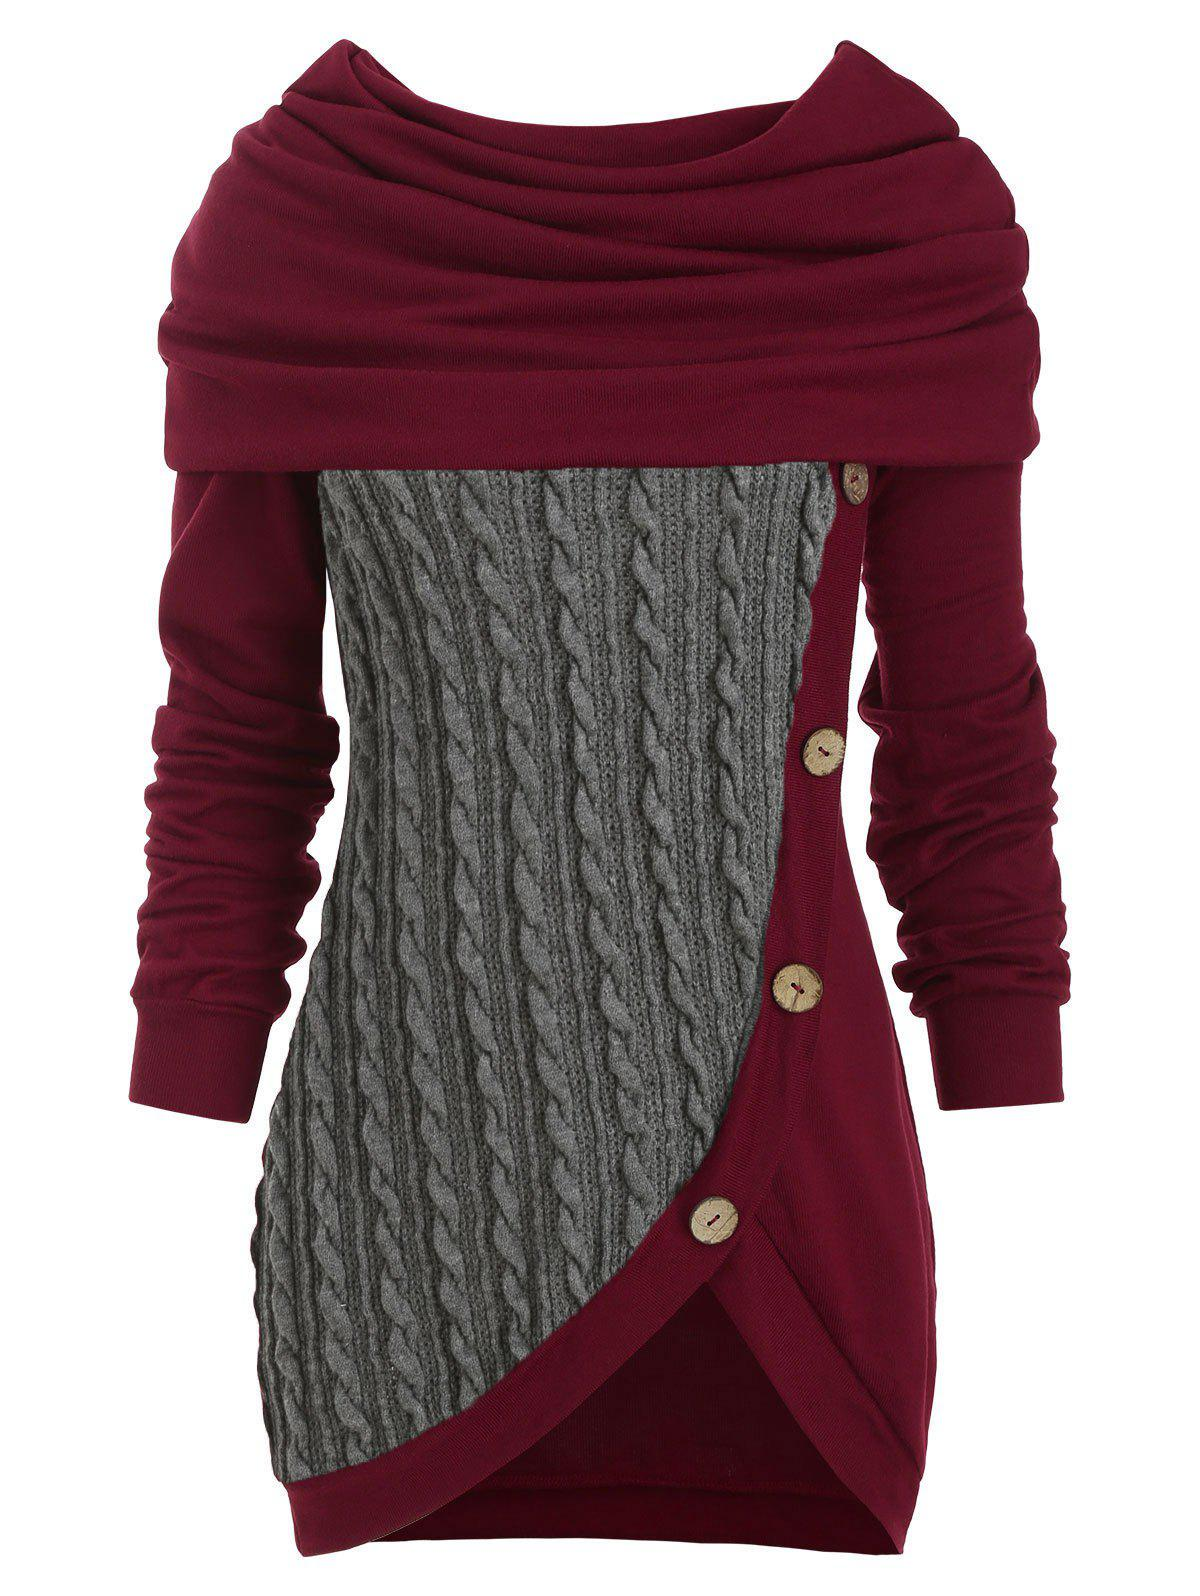 New Cowl Neck Cable Knit Tunic Knitwear